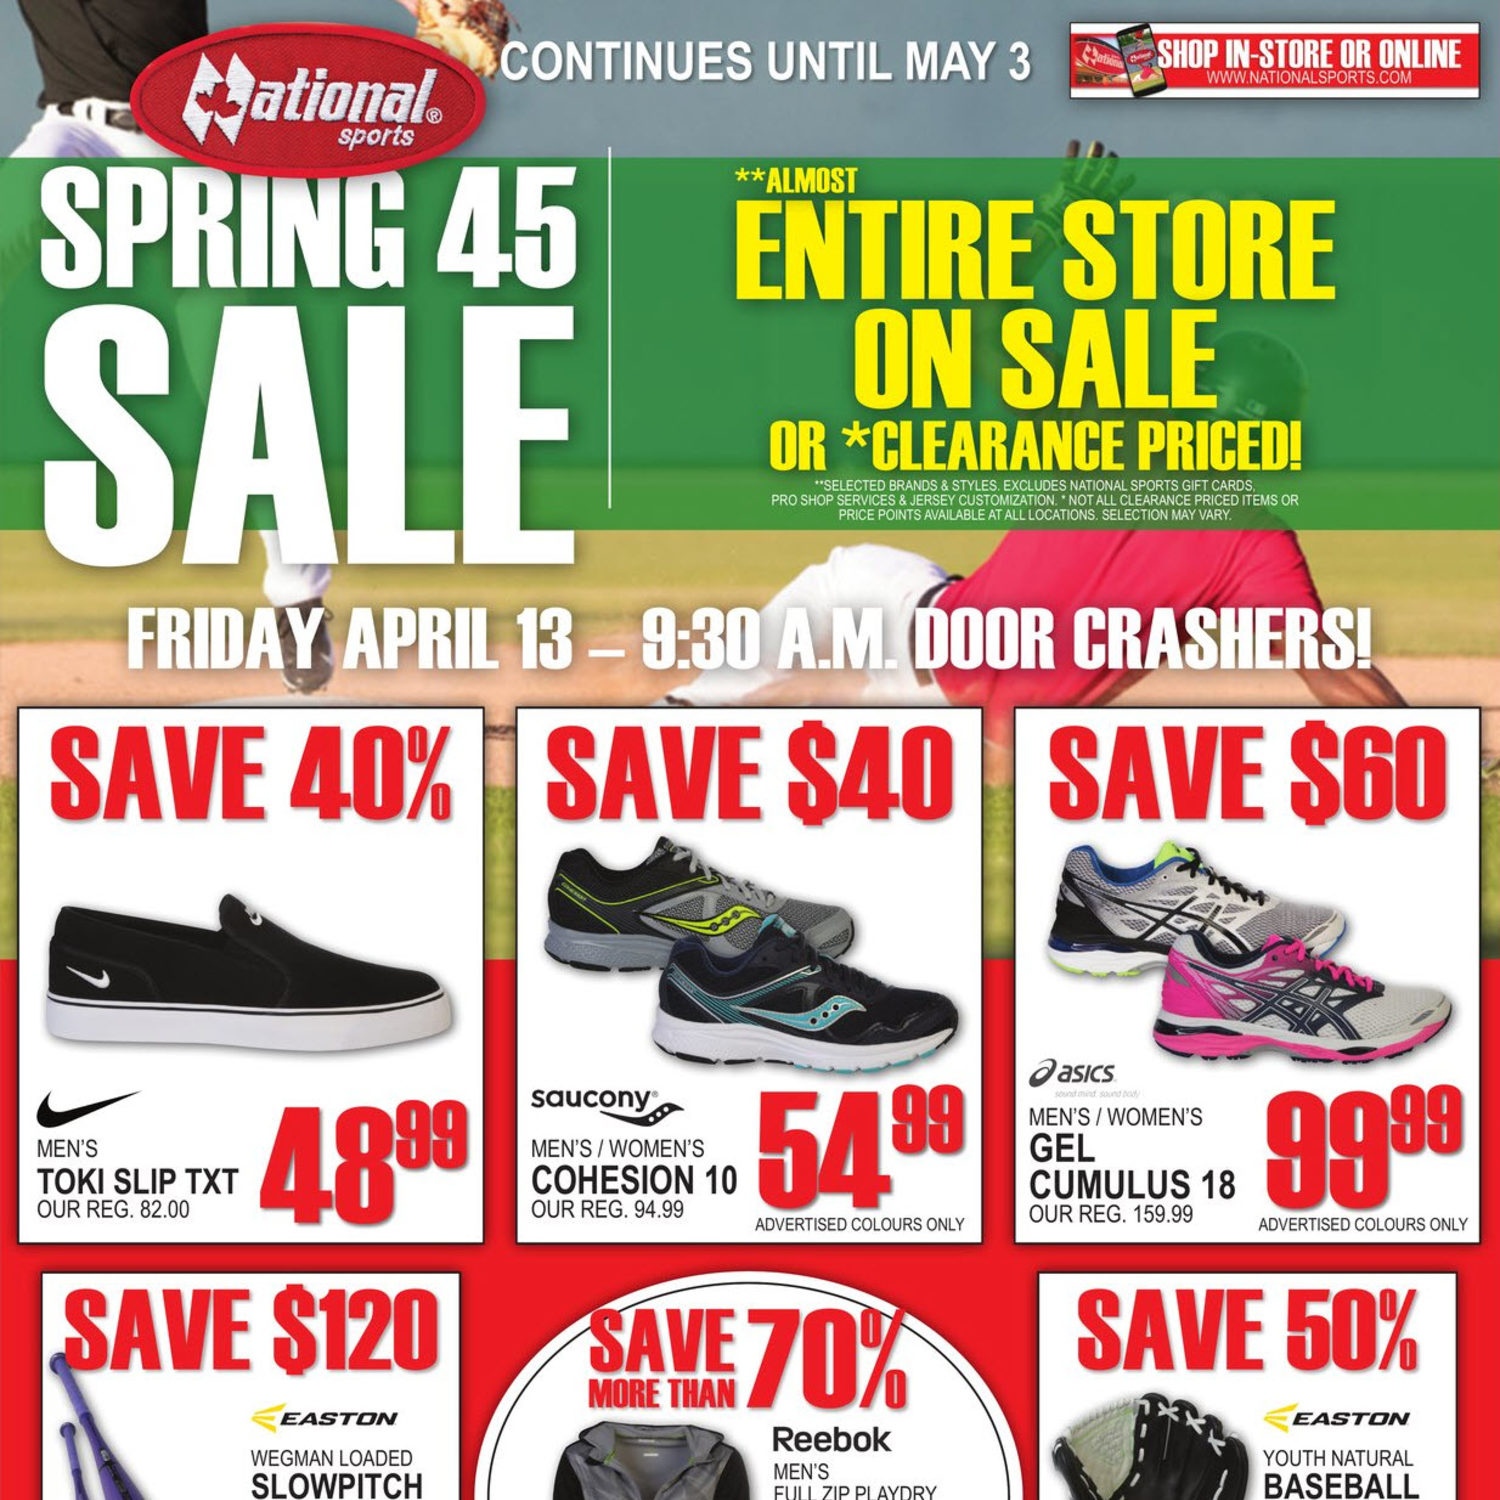 9cbb4b01b National Sports Weekly Flyer - Spring 45 Sale Continues - Apr 13 – May 3 -  RedFlagDeals.com